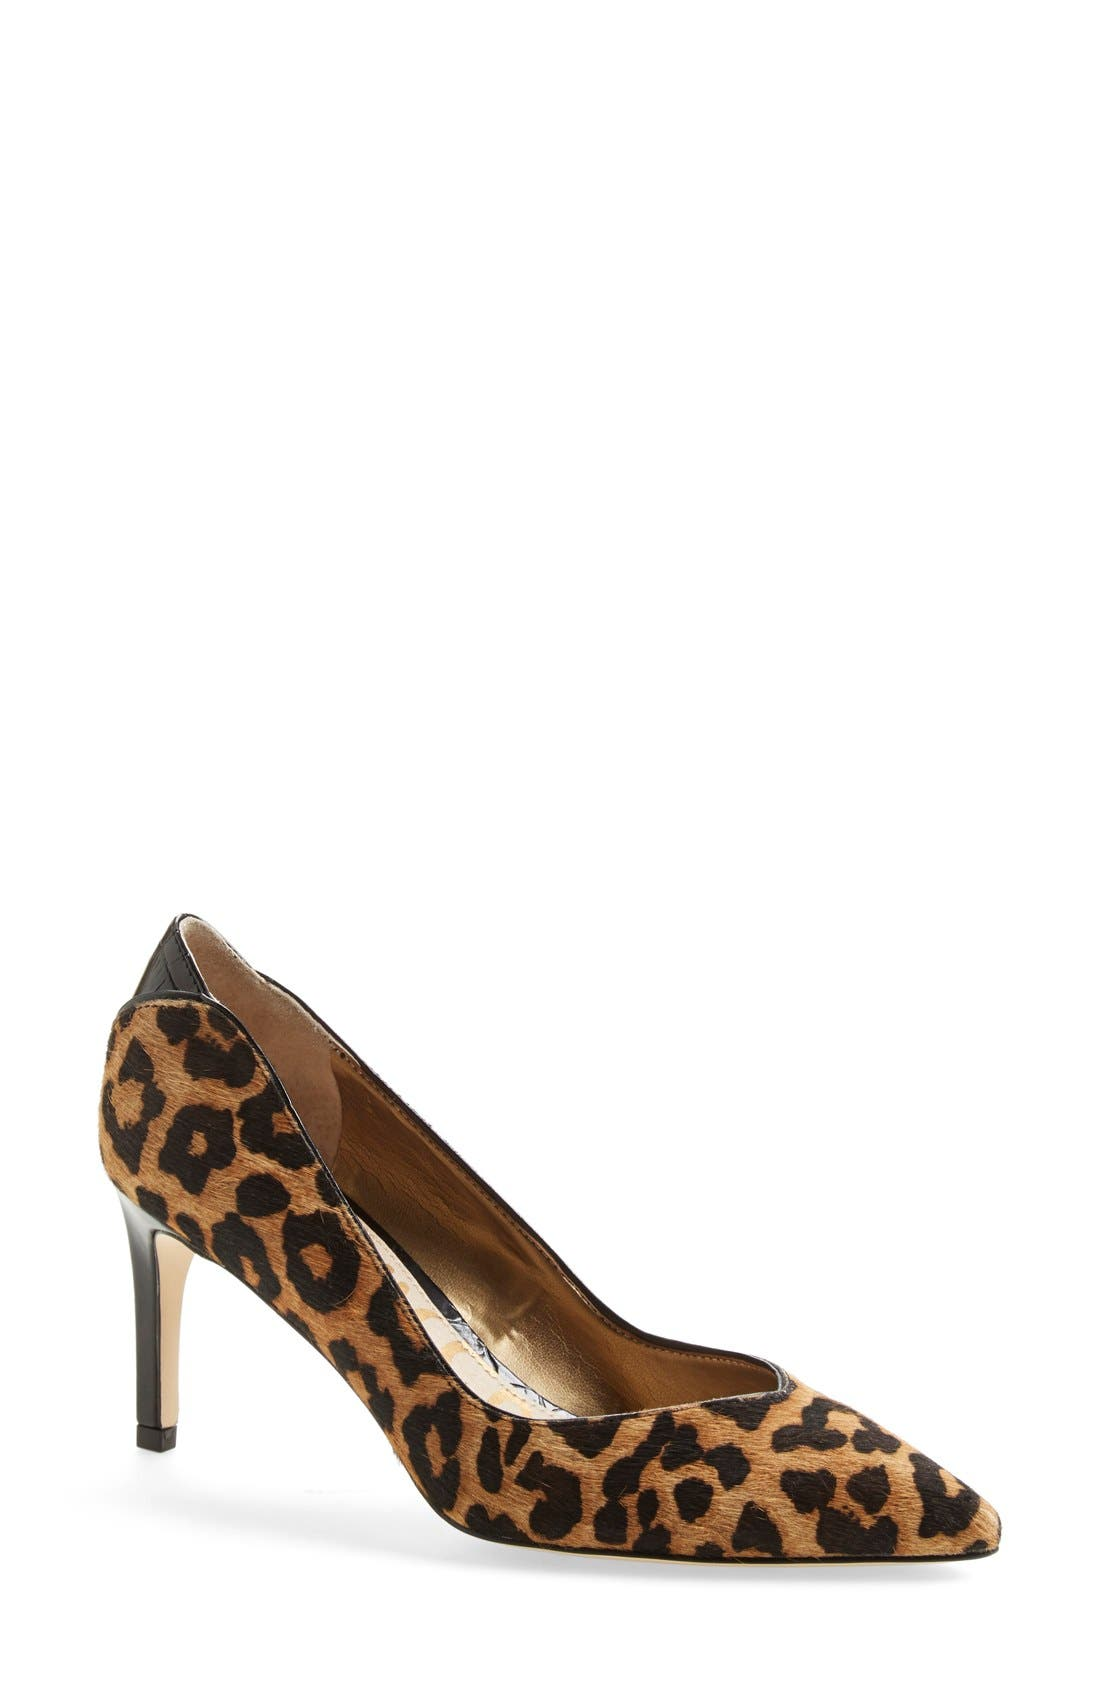 Alternate Image 1 Selected - Sam Edelman 'Orella' Pump (Women)